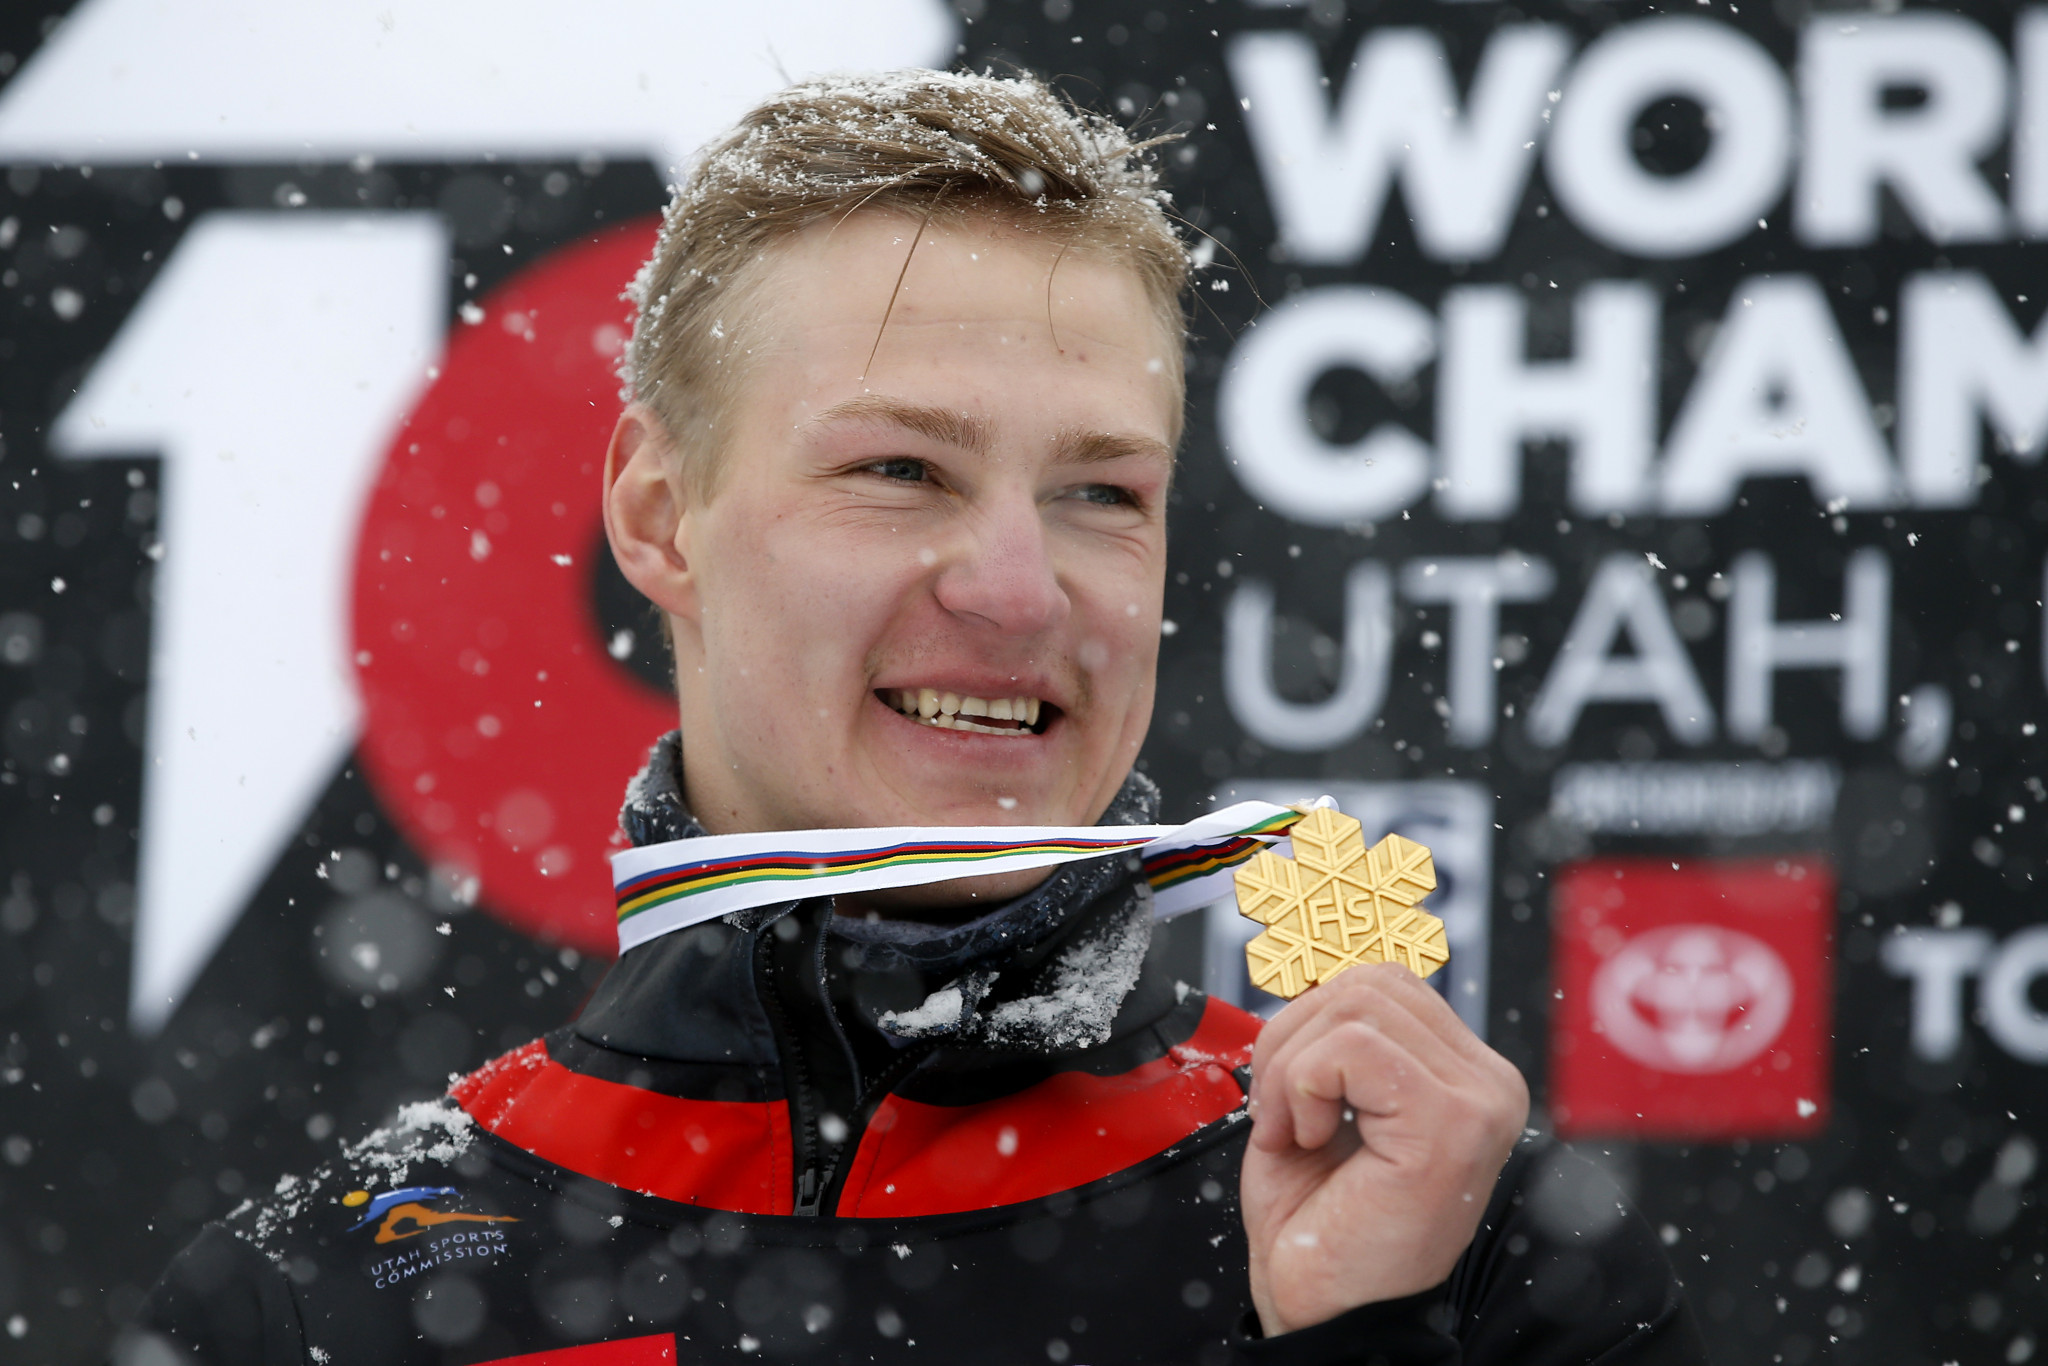 Two-time snowboard world champion Dmitry Loginov will compete for Russia at the Krasnoyarsk 2019 Winter Universiade ©Getty Images